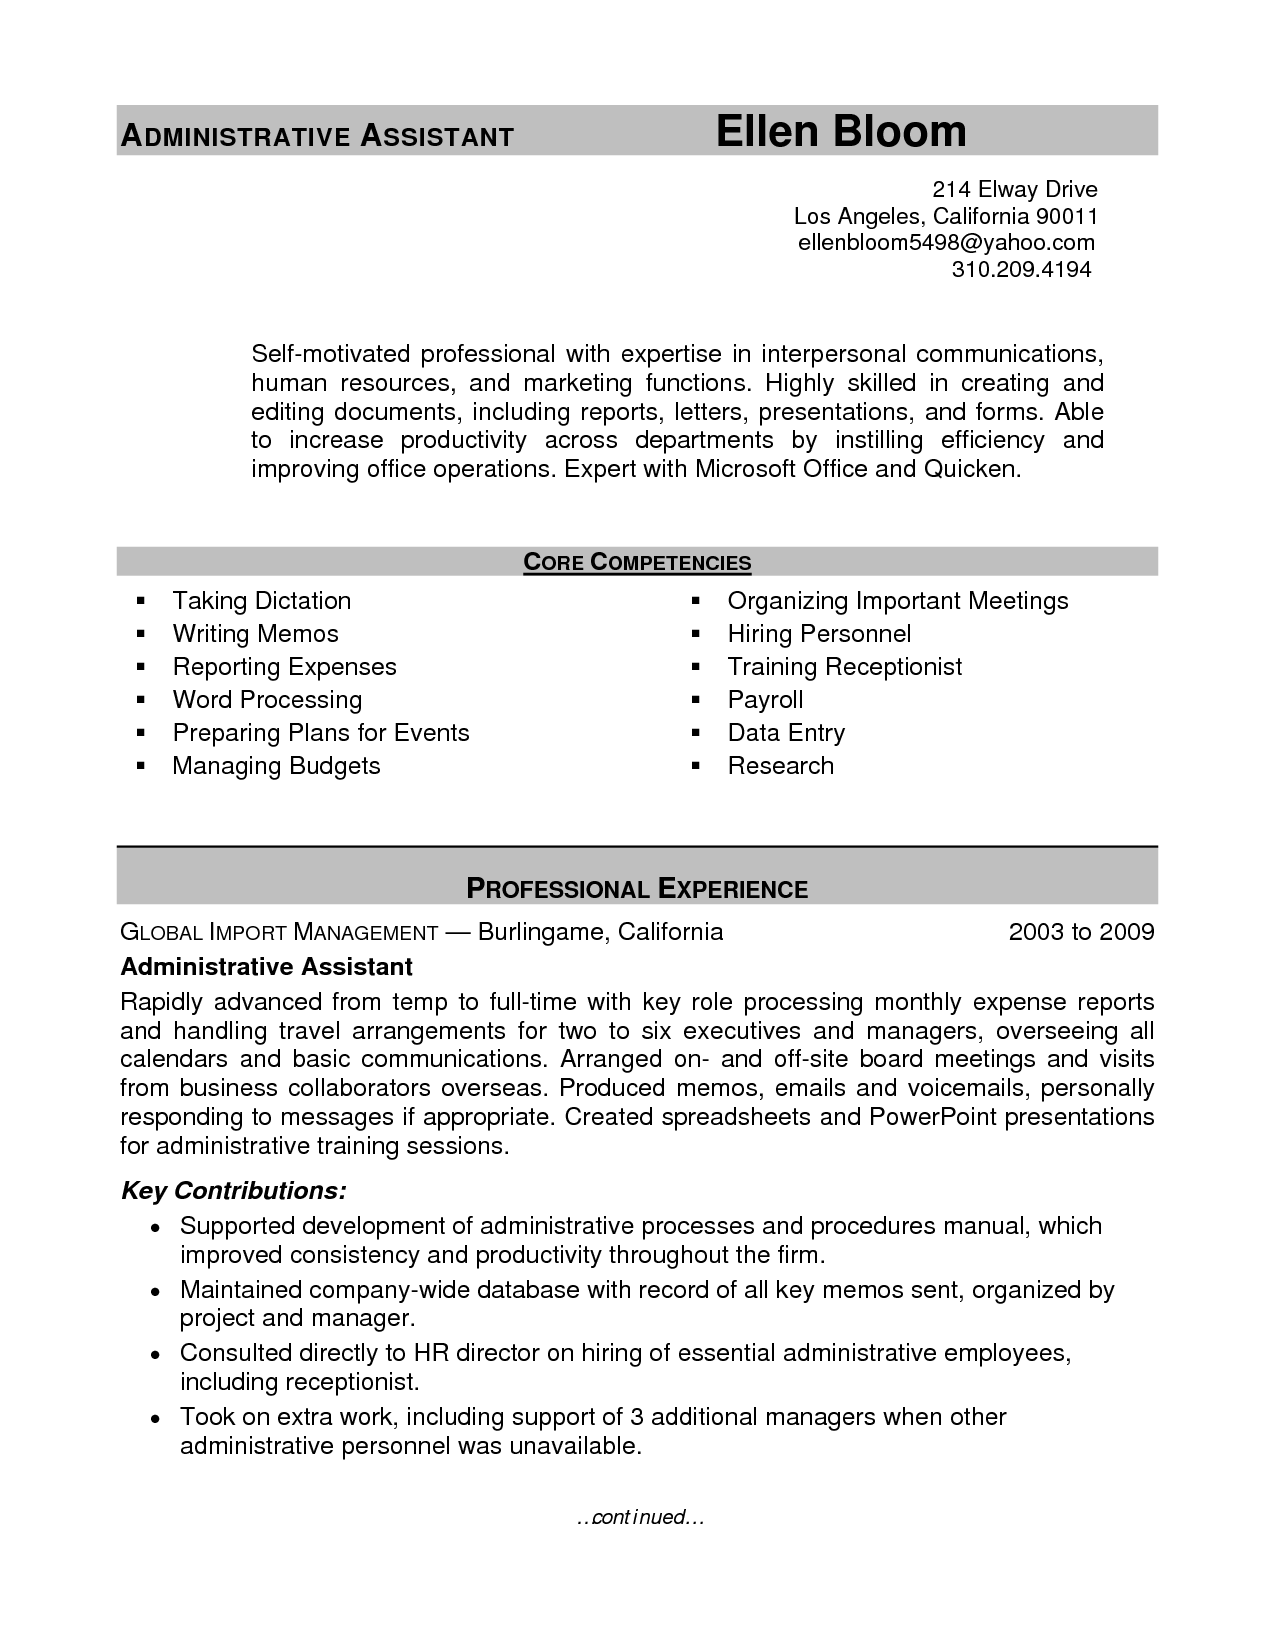 Principal Investigator Sample Resume sale contract sample  sample